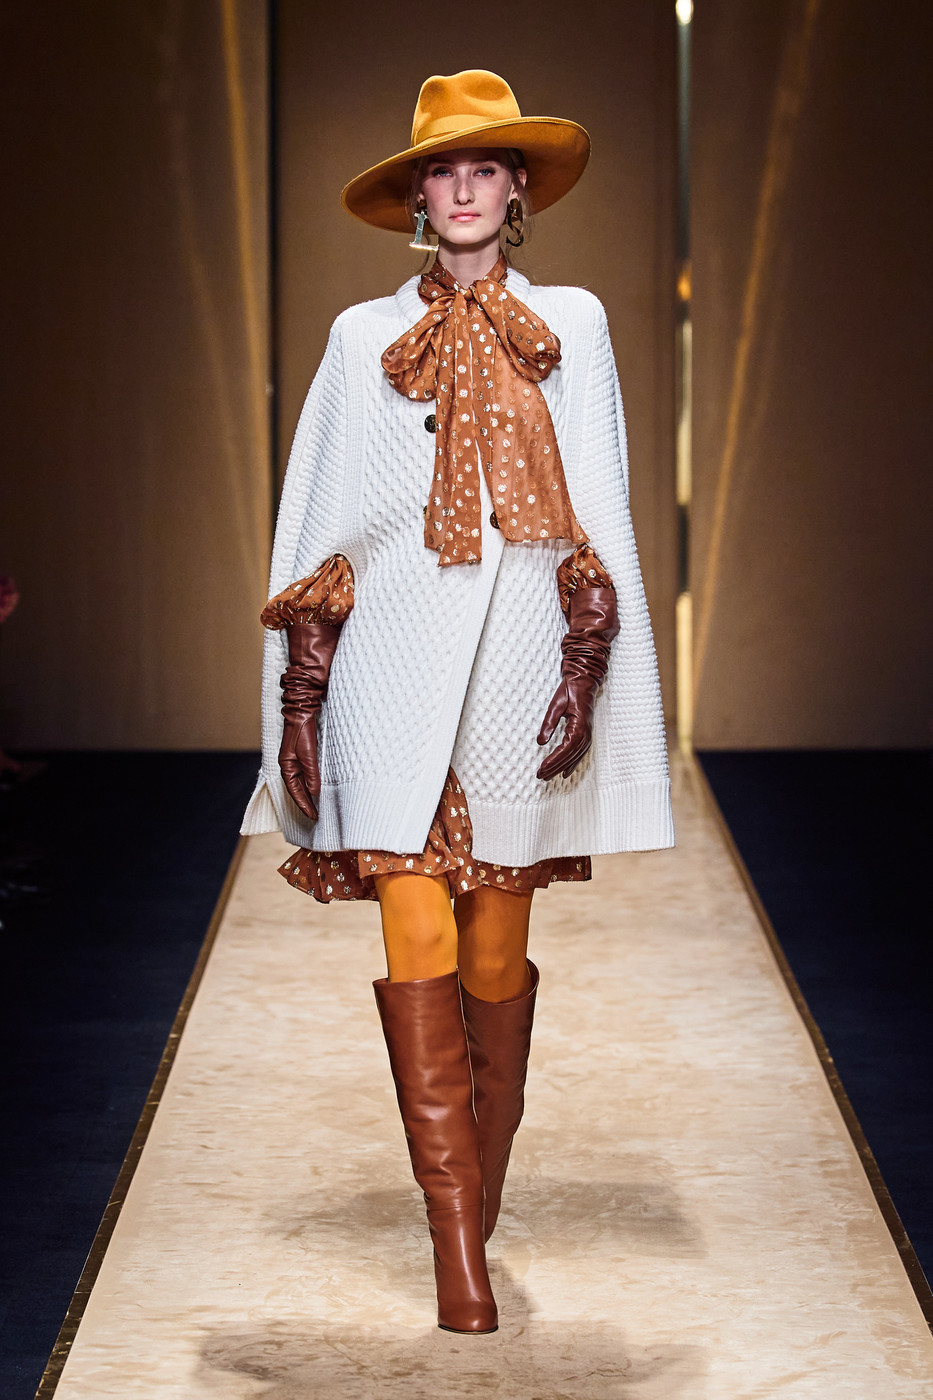 Luisa Spagnoli Fall 2020 Runway Pictures Livingly